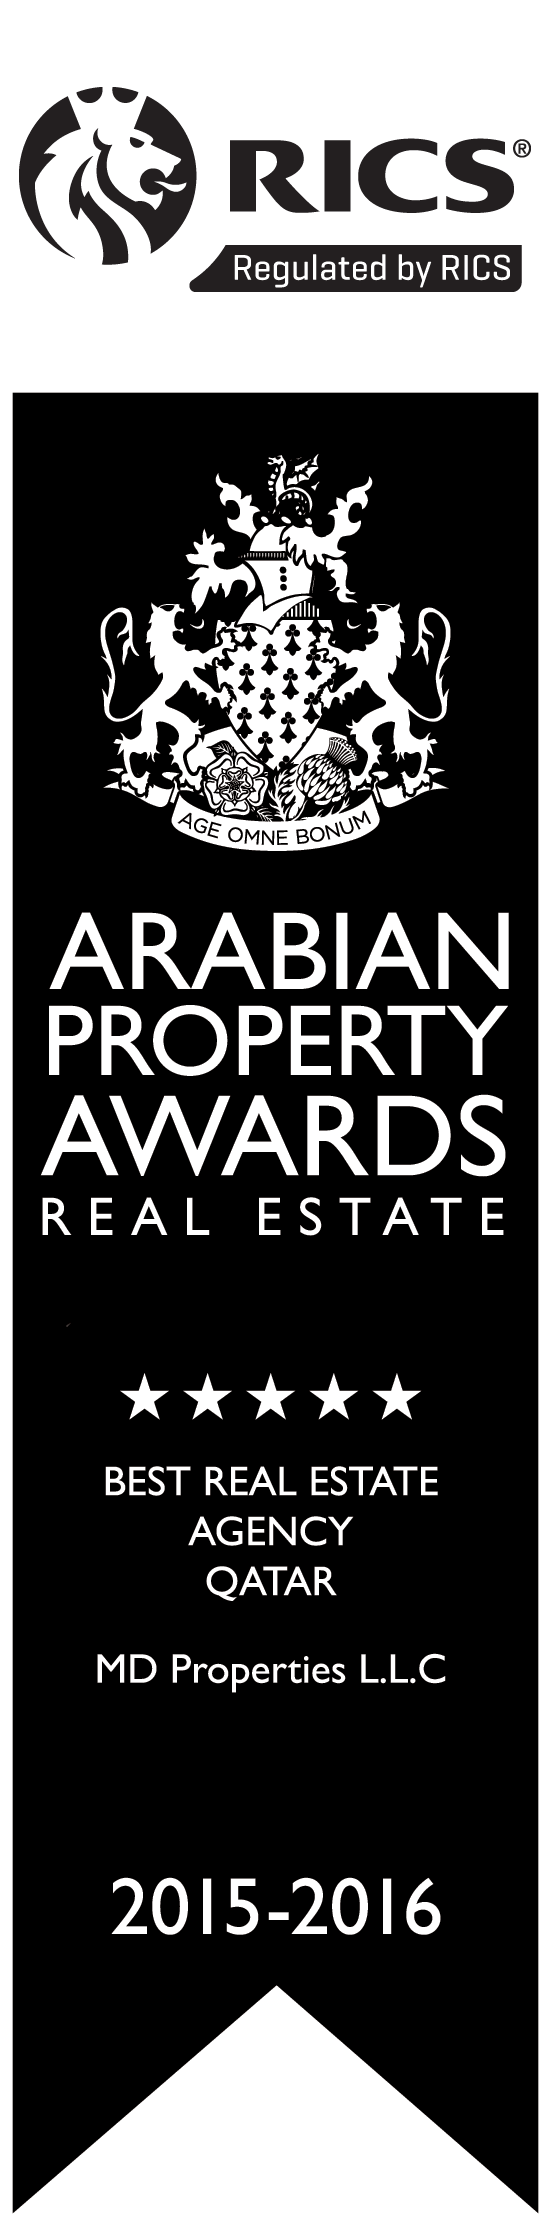 Arabian Property Awards - Real Estate